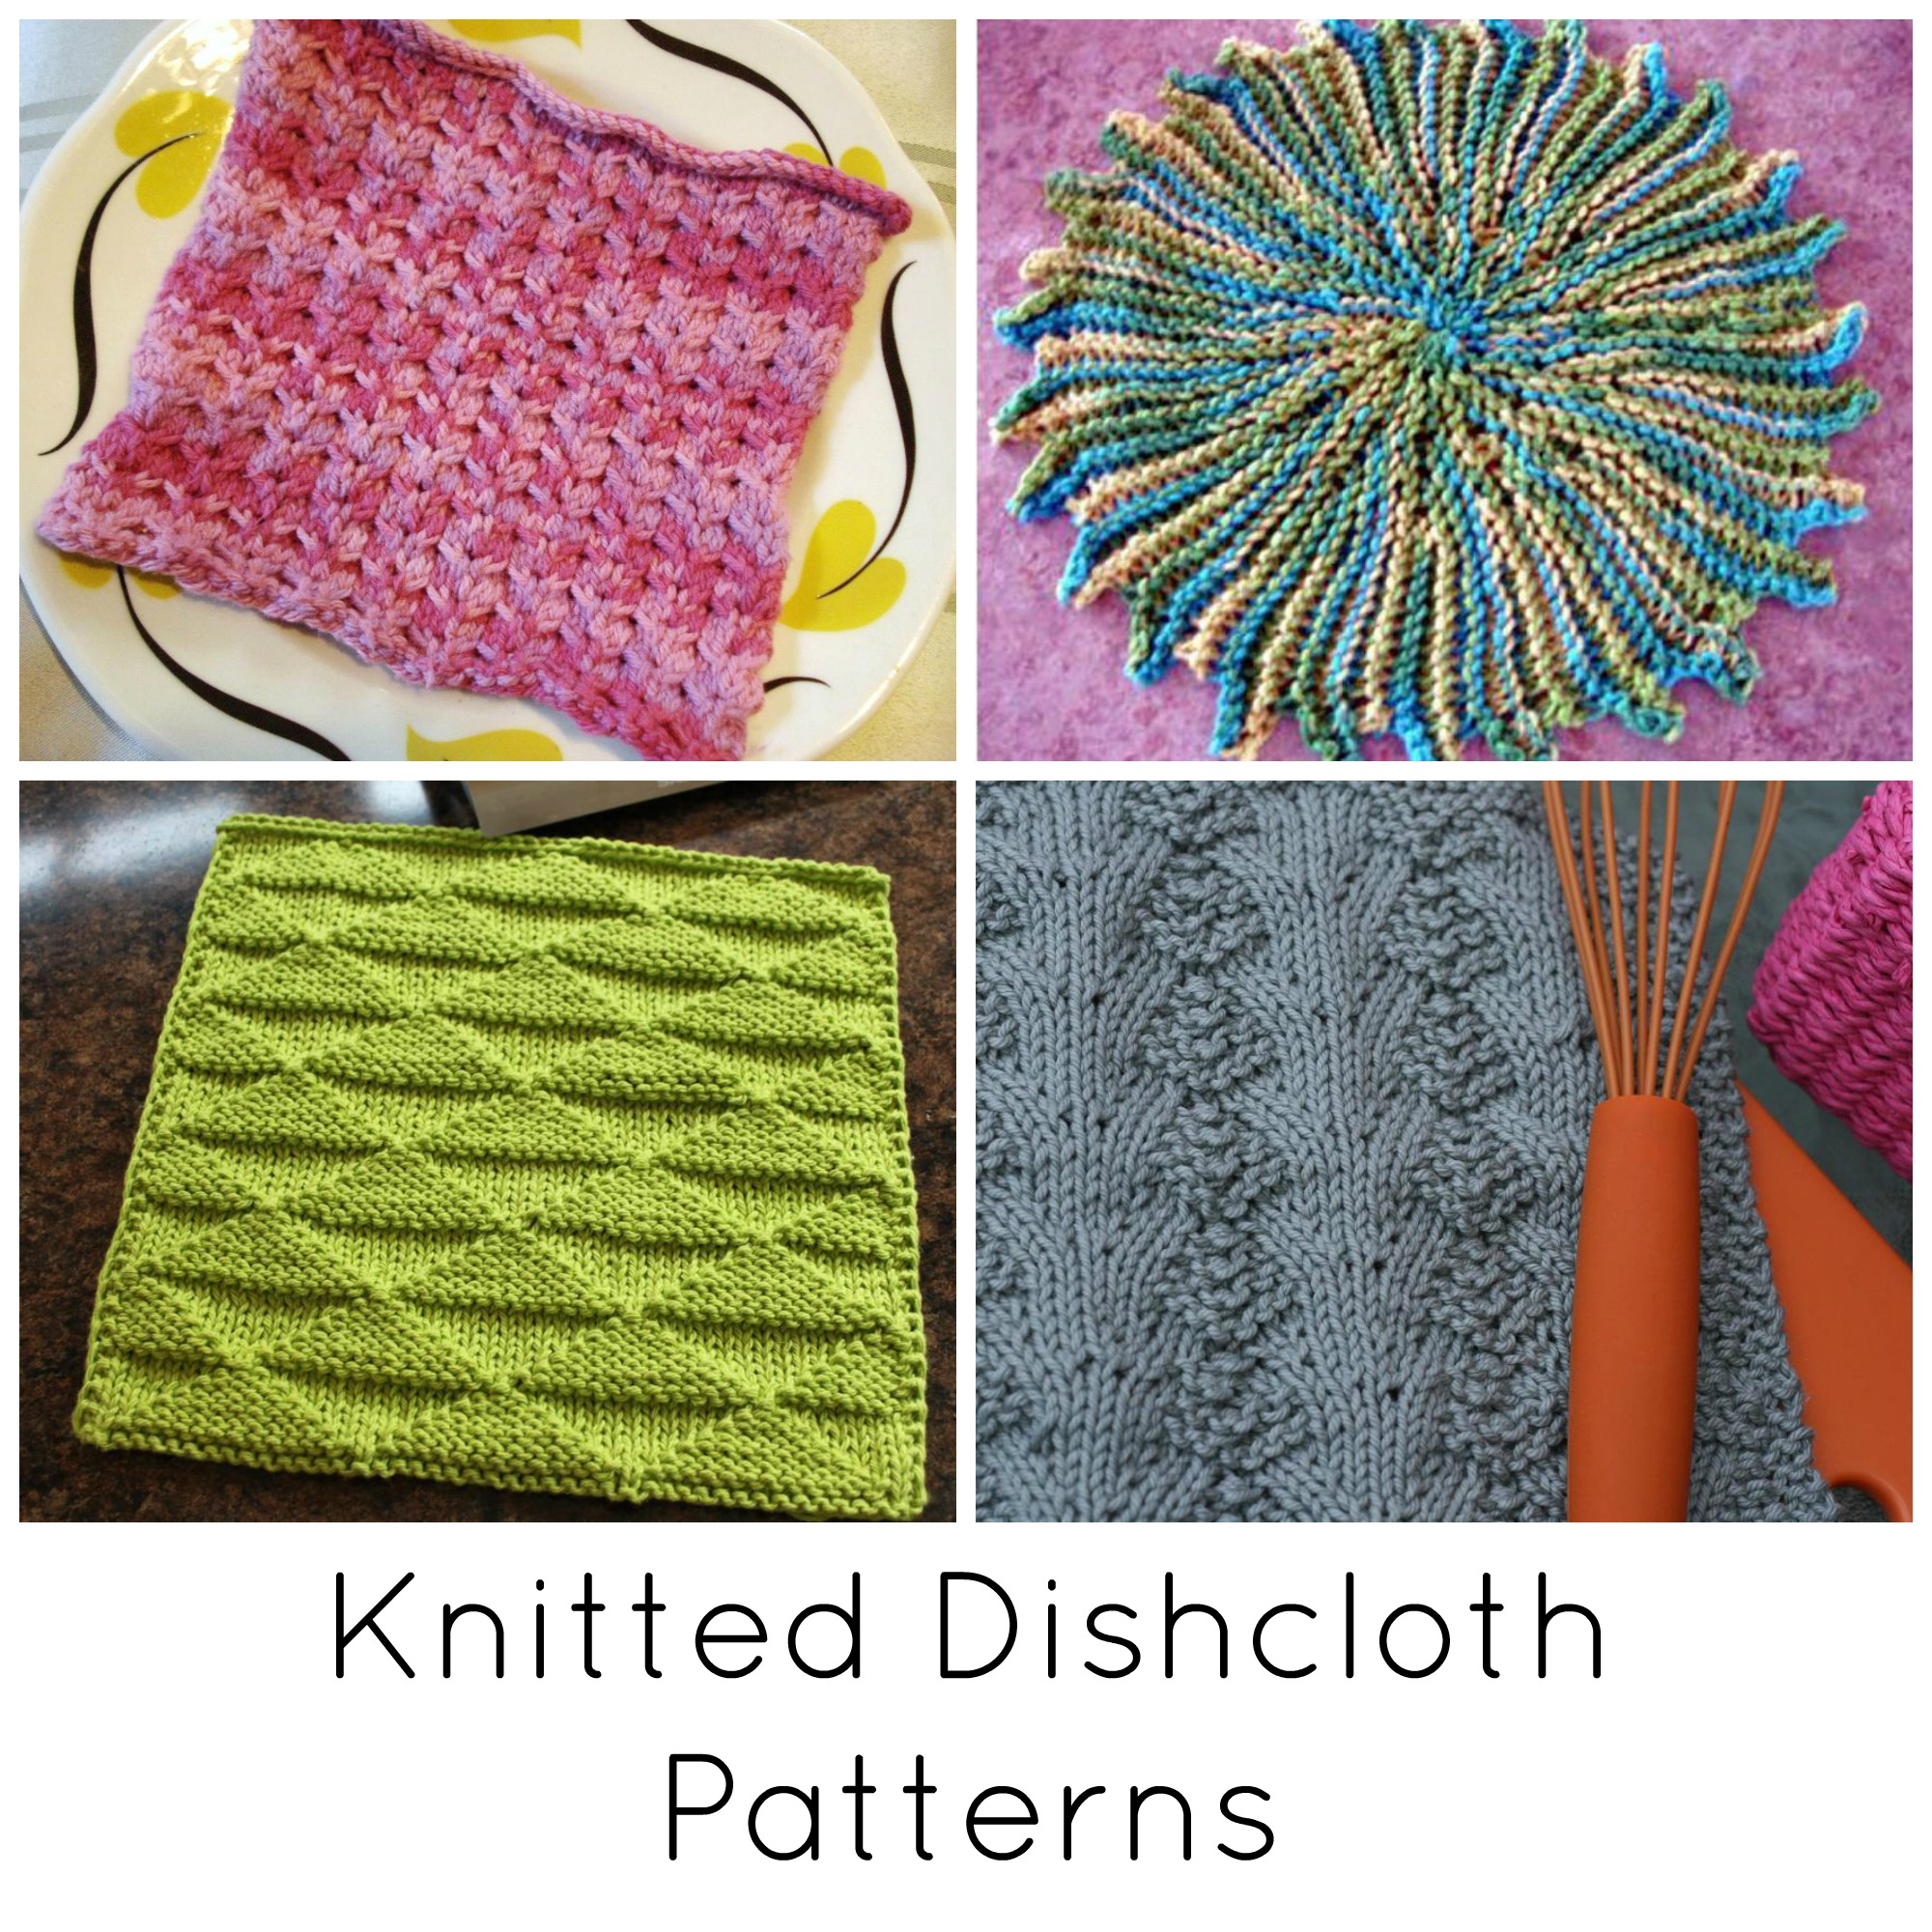 Knit Washcloth Patterns 10 Quick Knitted Dishcloth Patterns